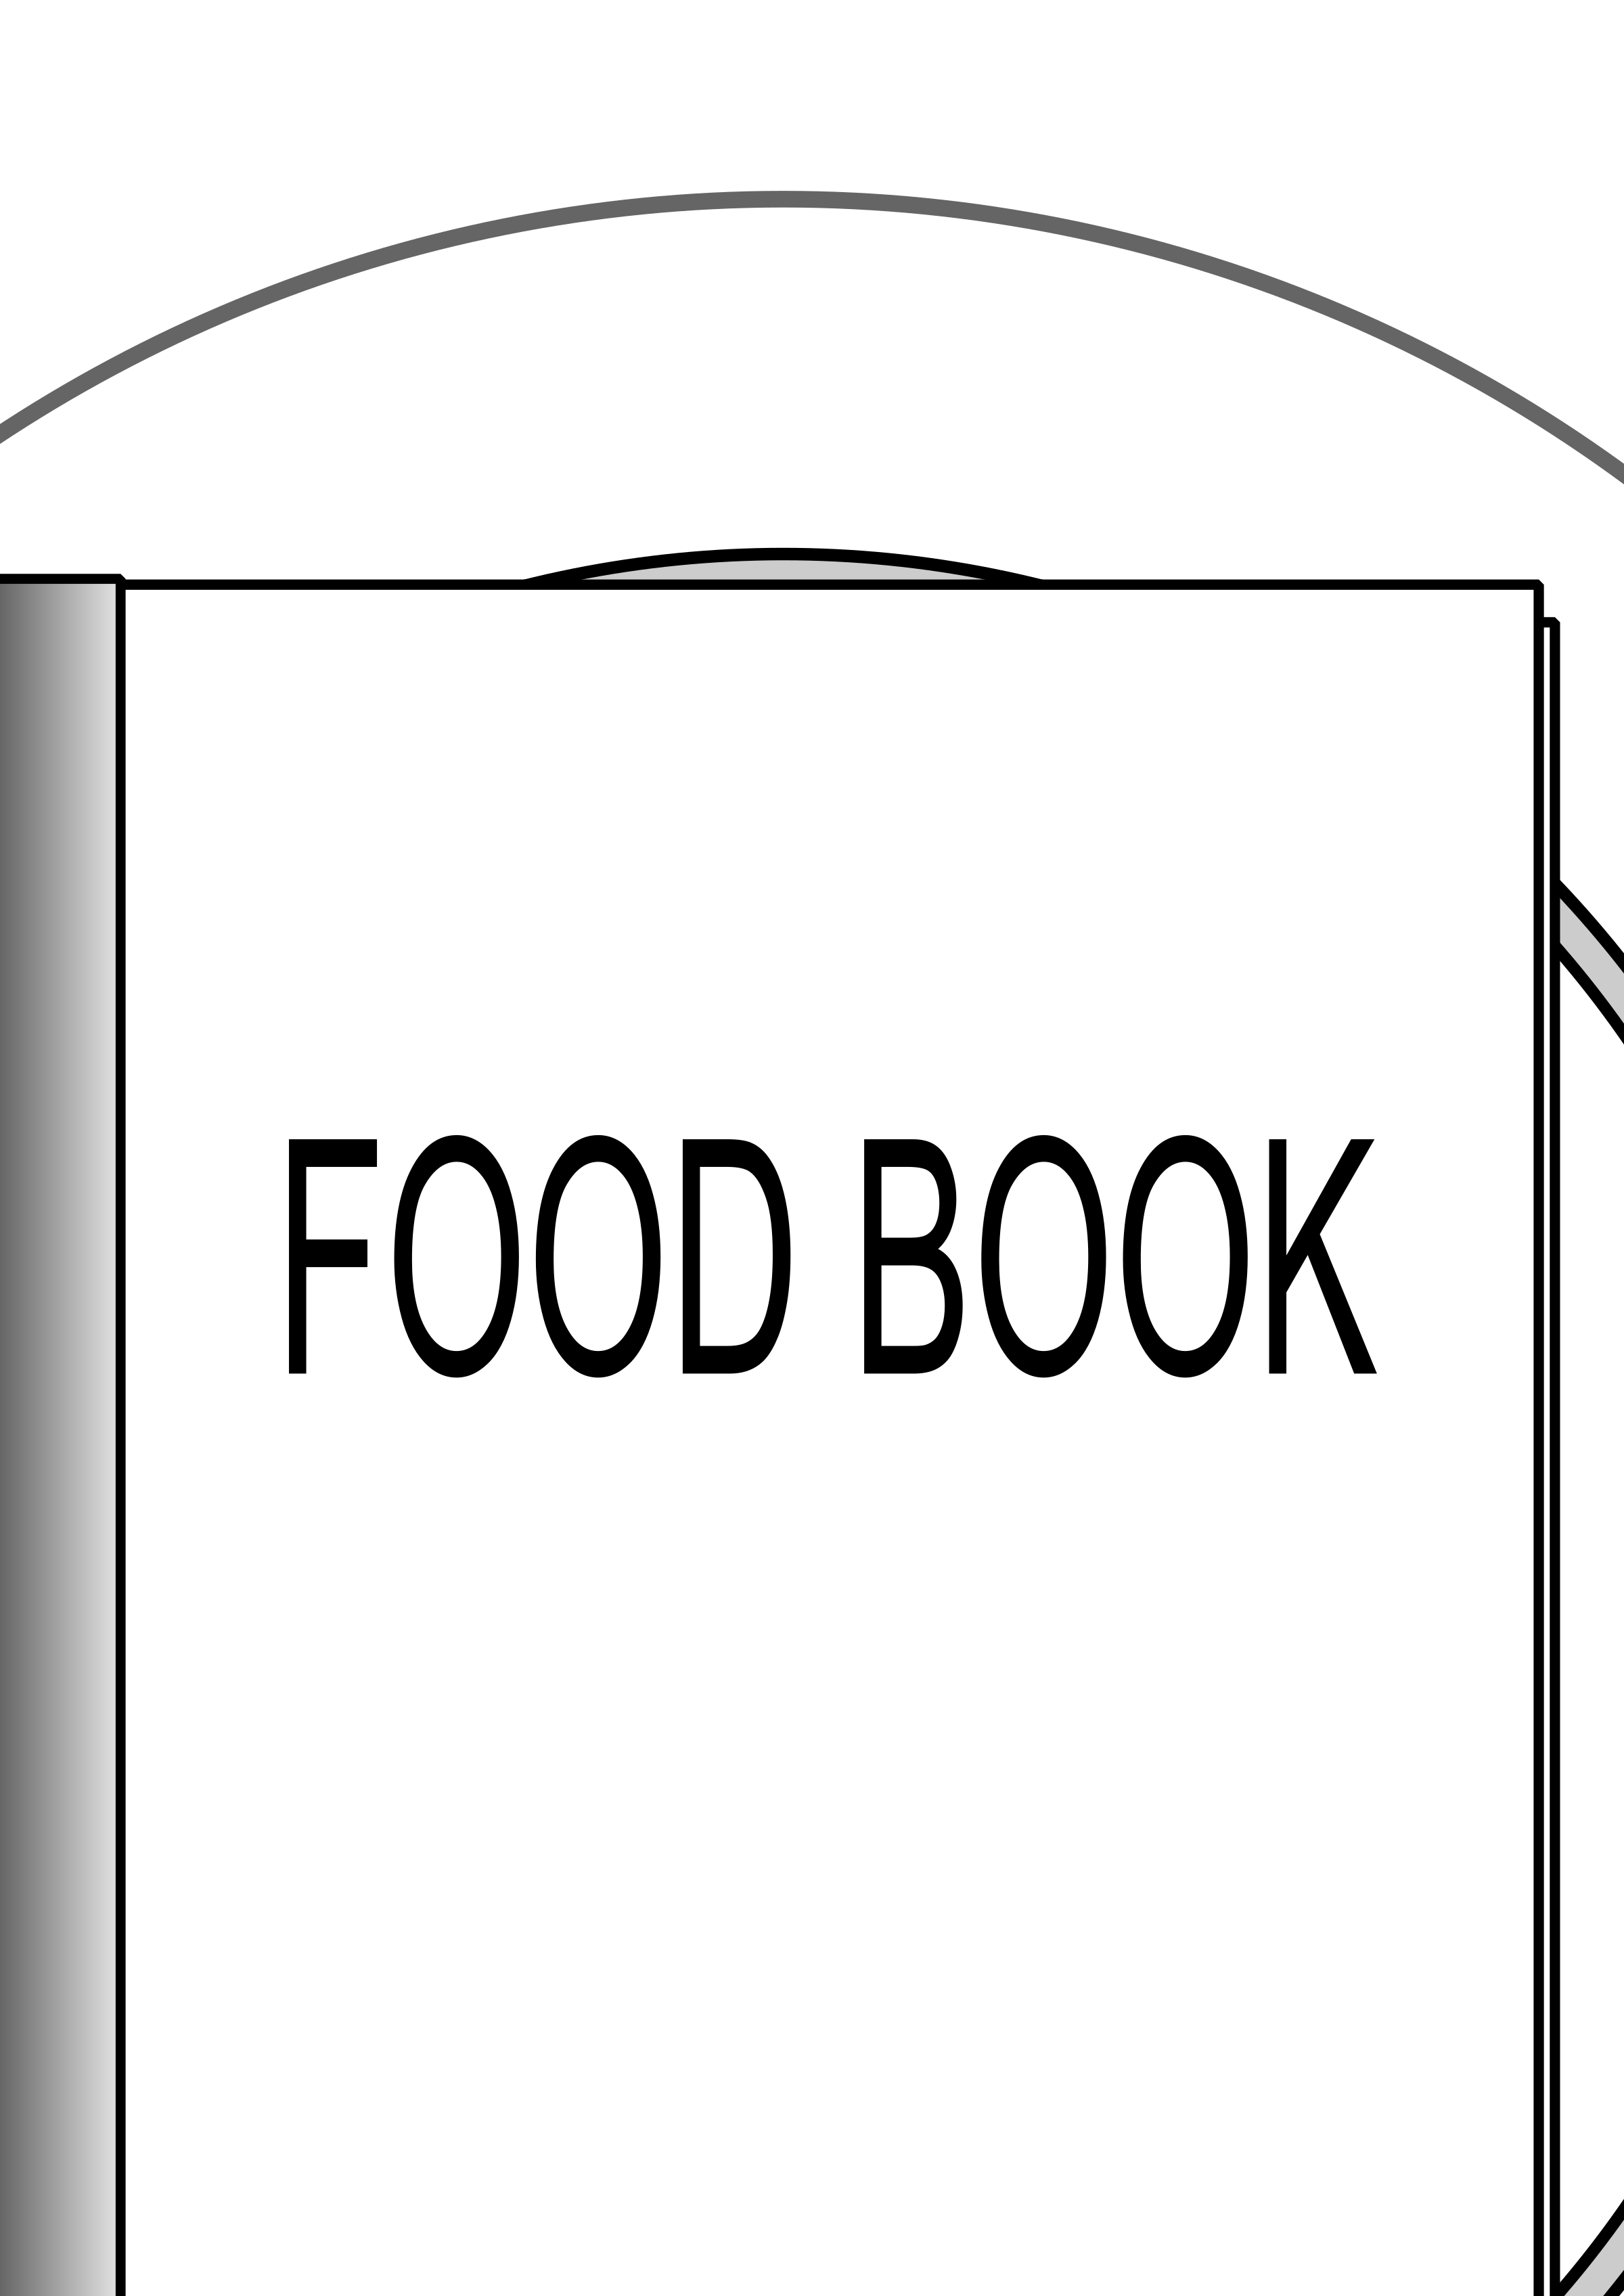 Food book by ozant